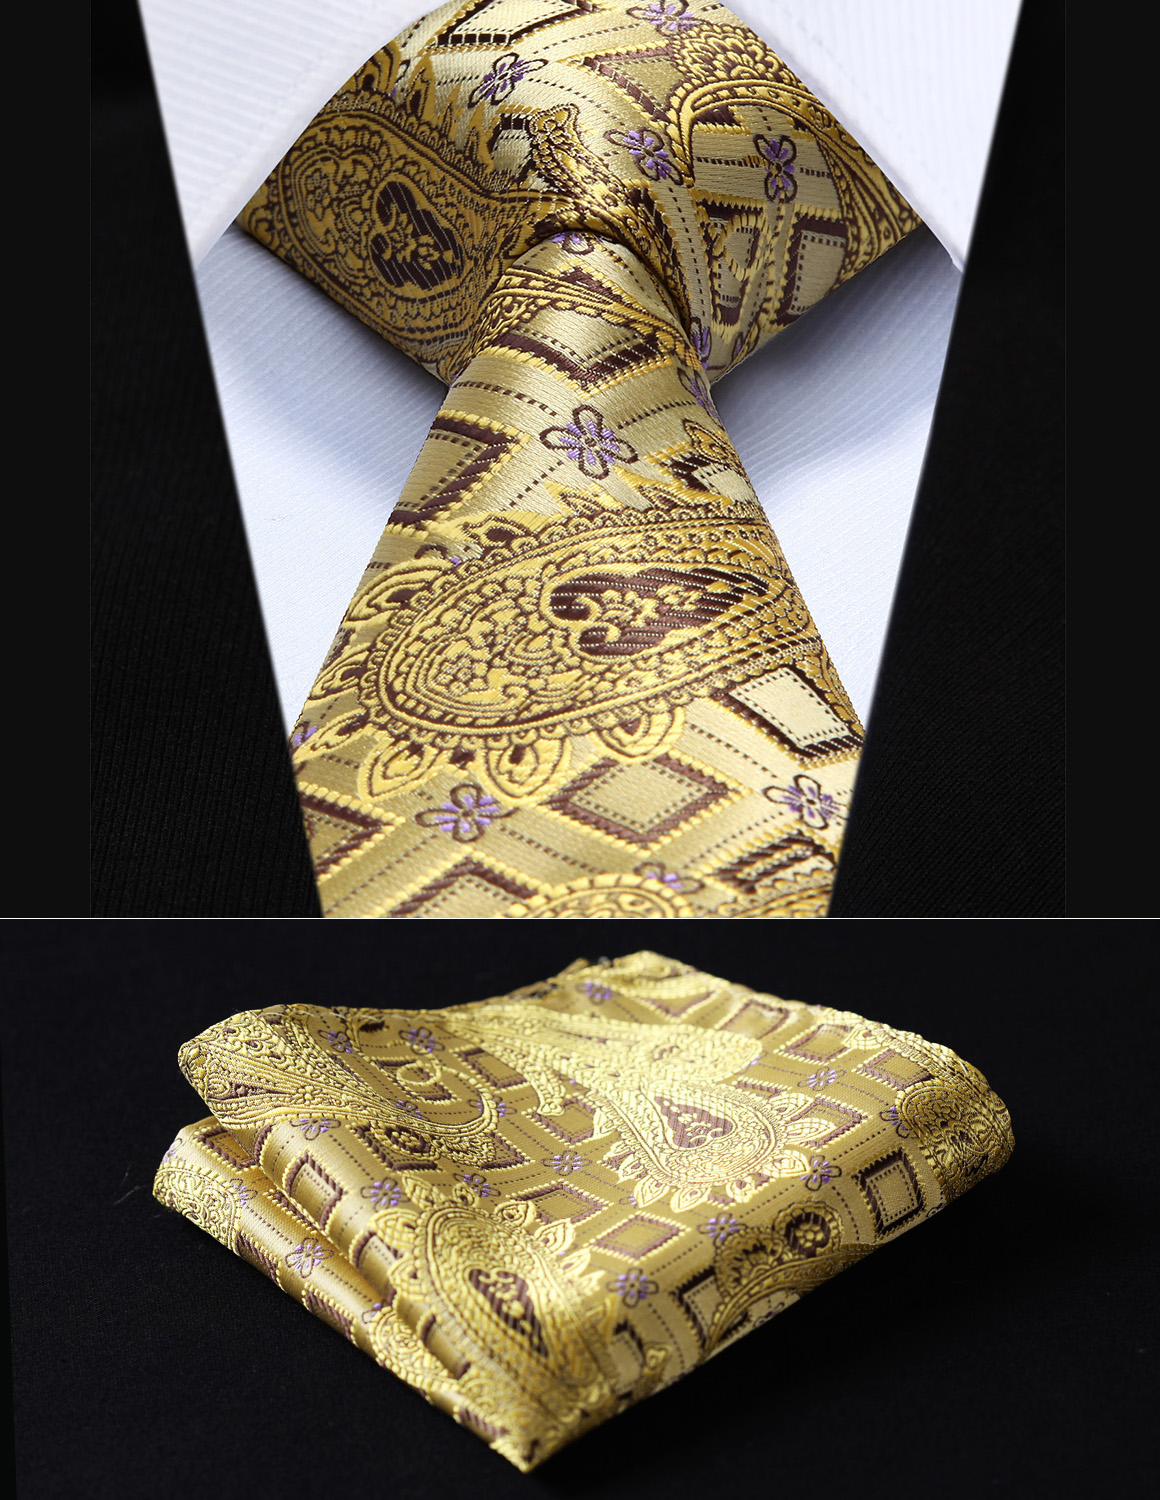 Party Wedding Classic Pocket Square Tie TFC013D8S Gold Check 3.4